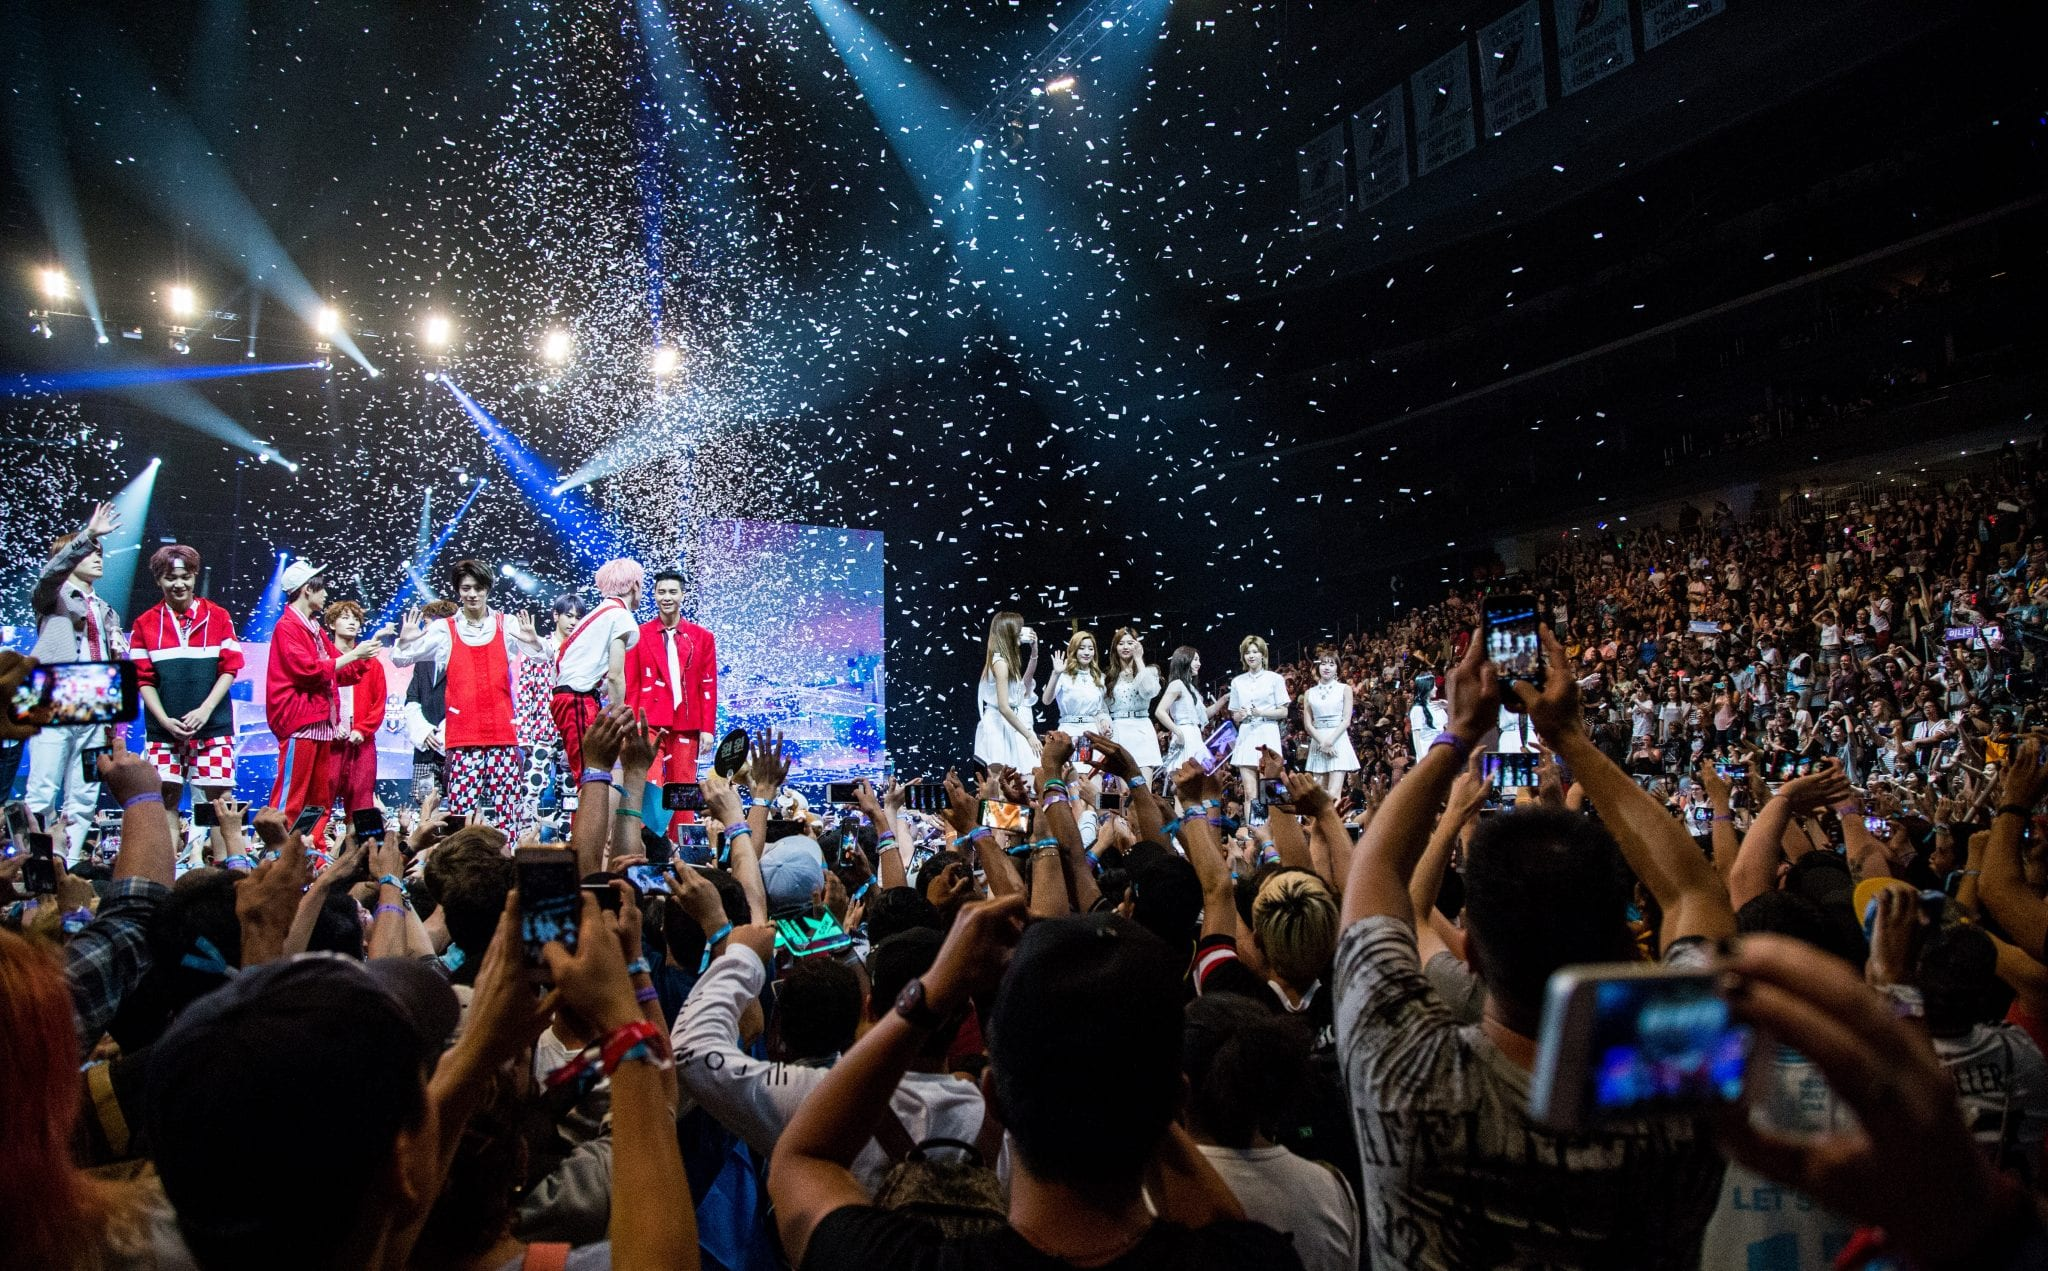 WTK REVIEW: CNBLUE, TWICE, NCT 127 & More Rock The Stage For KCON NY 2017